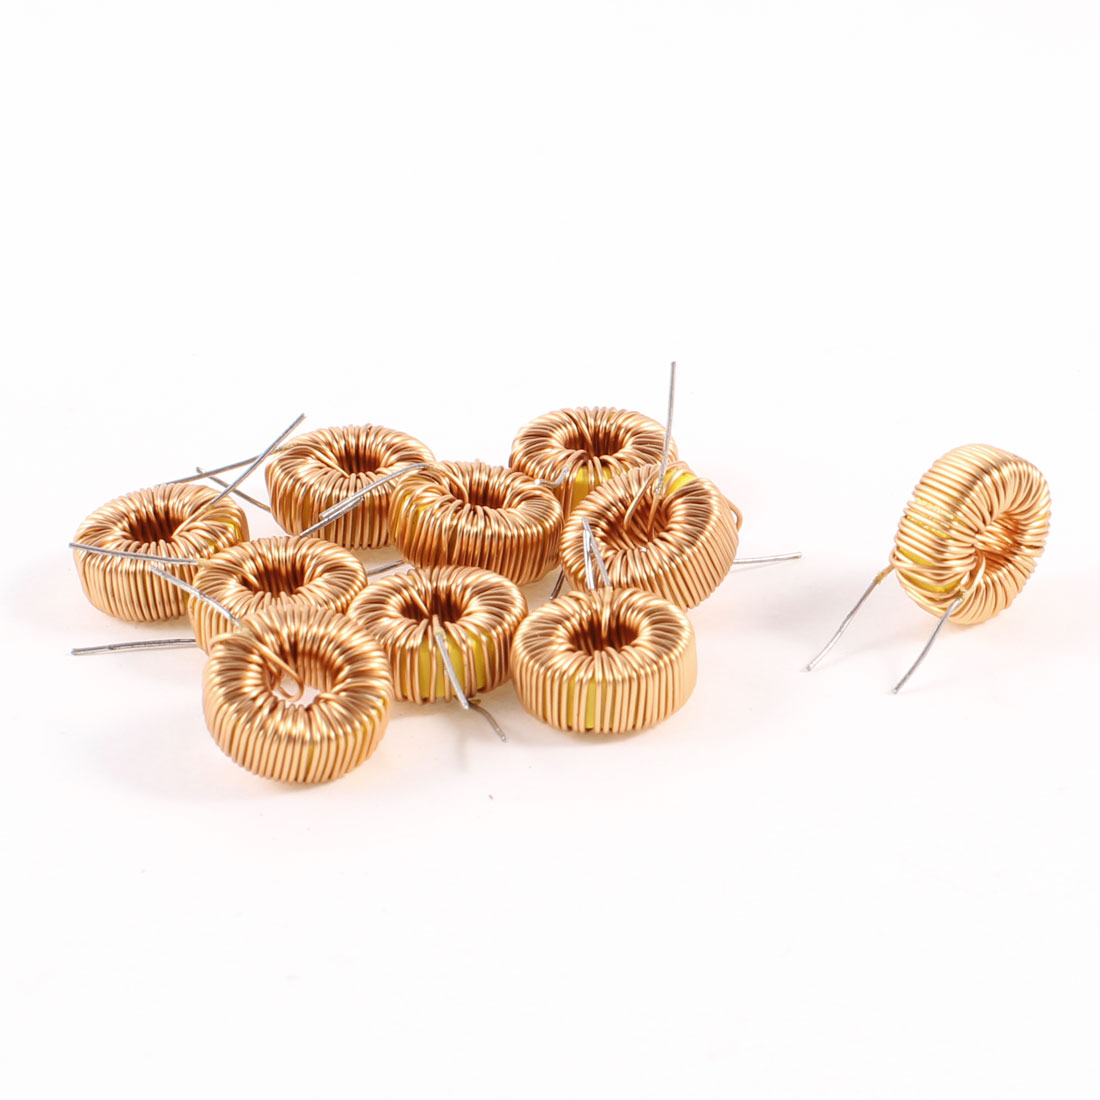 10 Pcs Toroid Core Inductor Wire Wind Wound 150uH 190mOhm 1A Coil